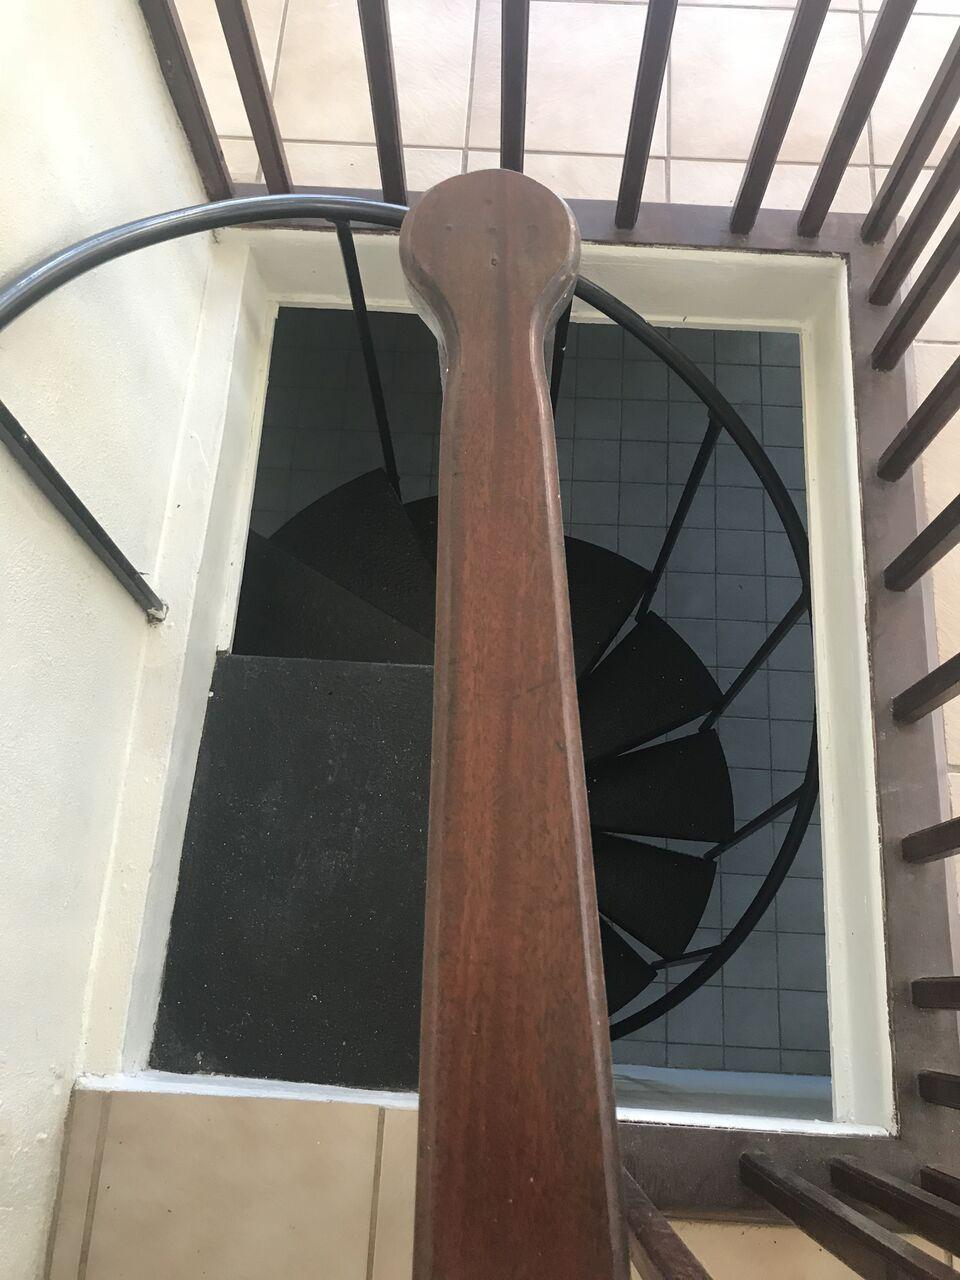 Spiral staircase to downstairs Apt.